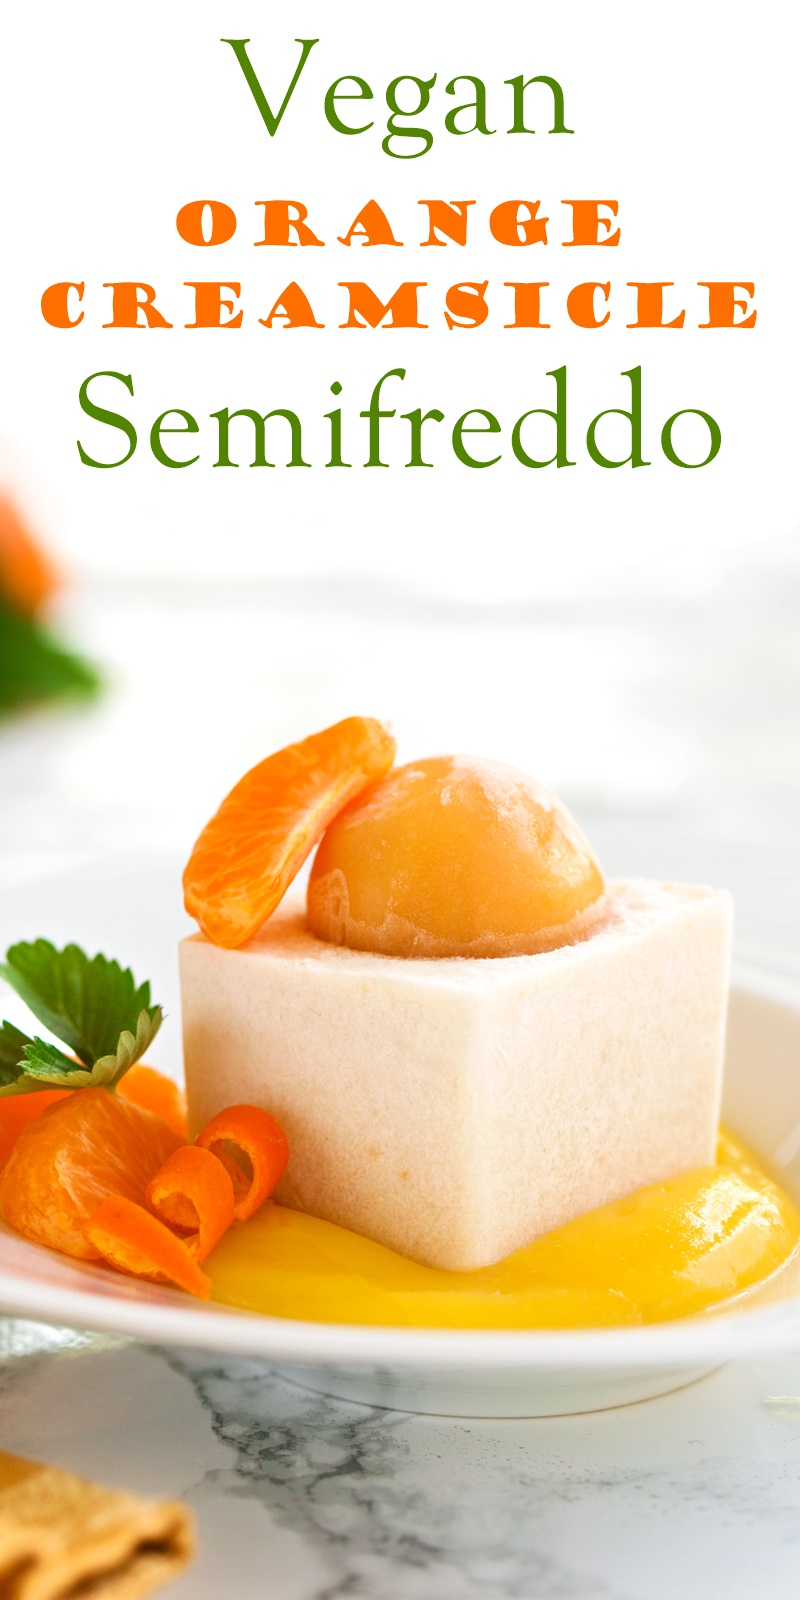 Orange Creamsicle Vegan Semifreddo Recipe - A sweet, creamy, dairy-free, egg-free and gluten-free frozen dessert